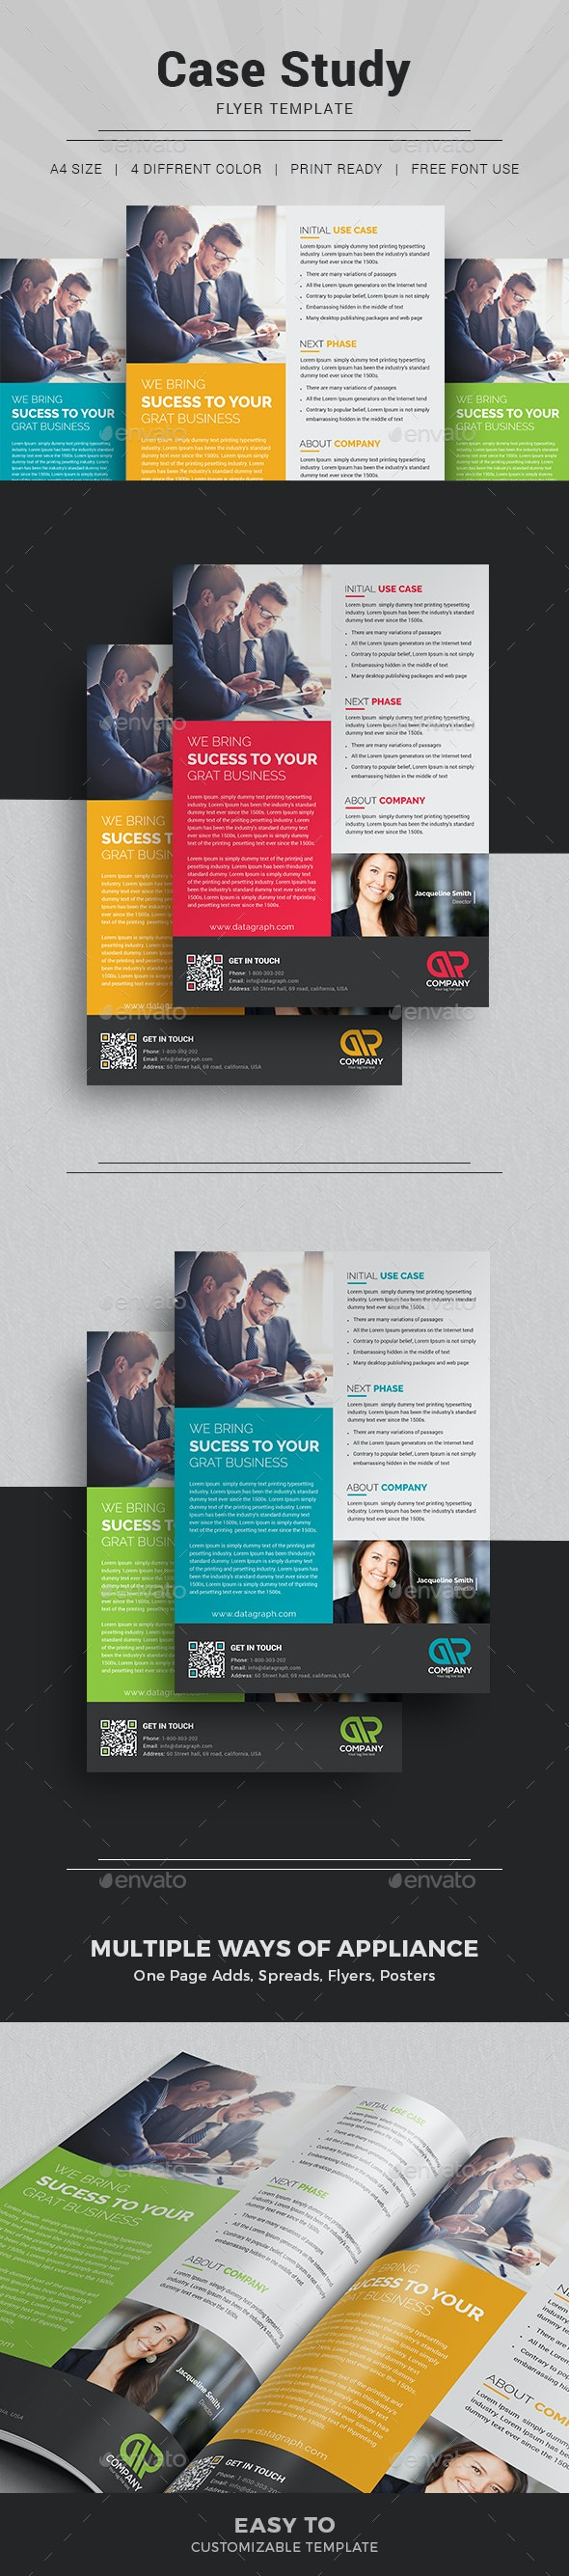 Case Study Template I Flyer - Newsletters Print Templates